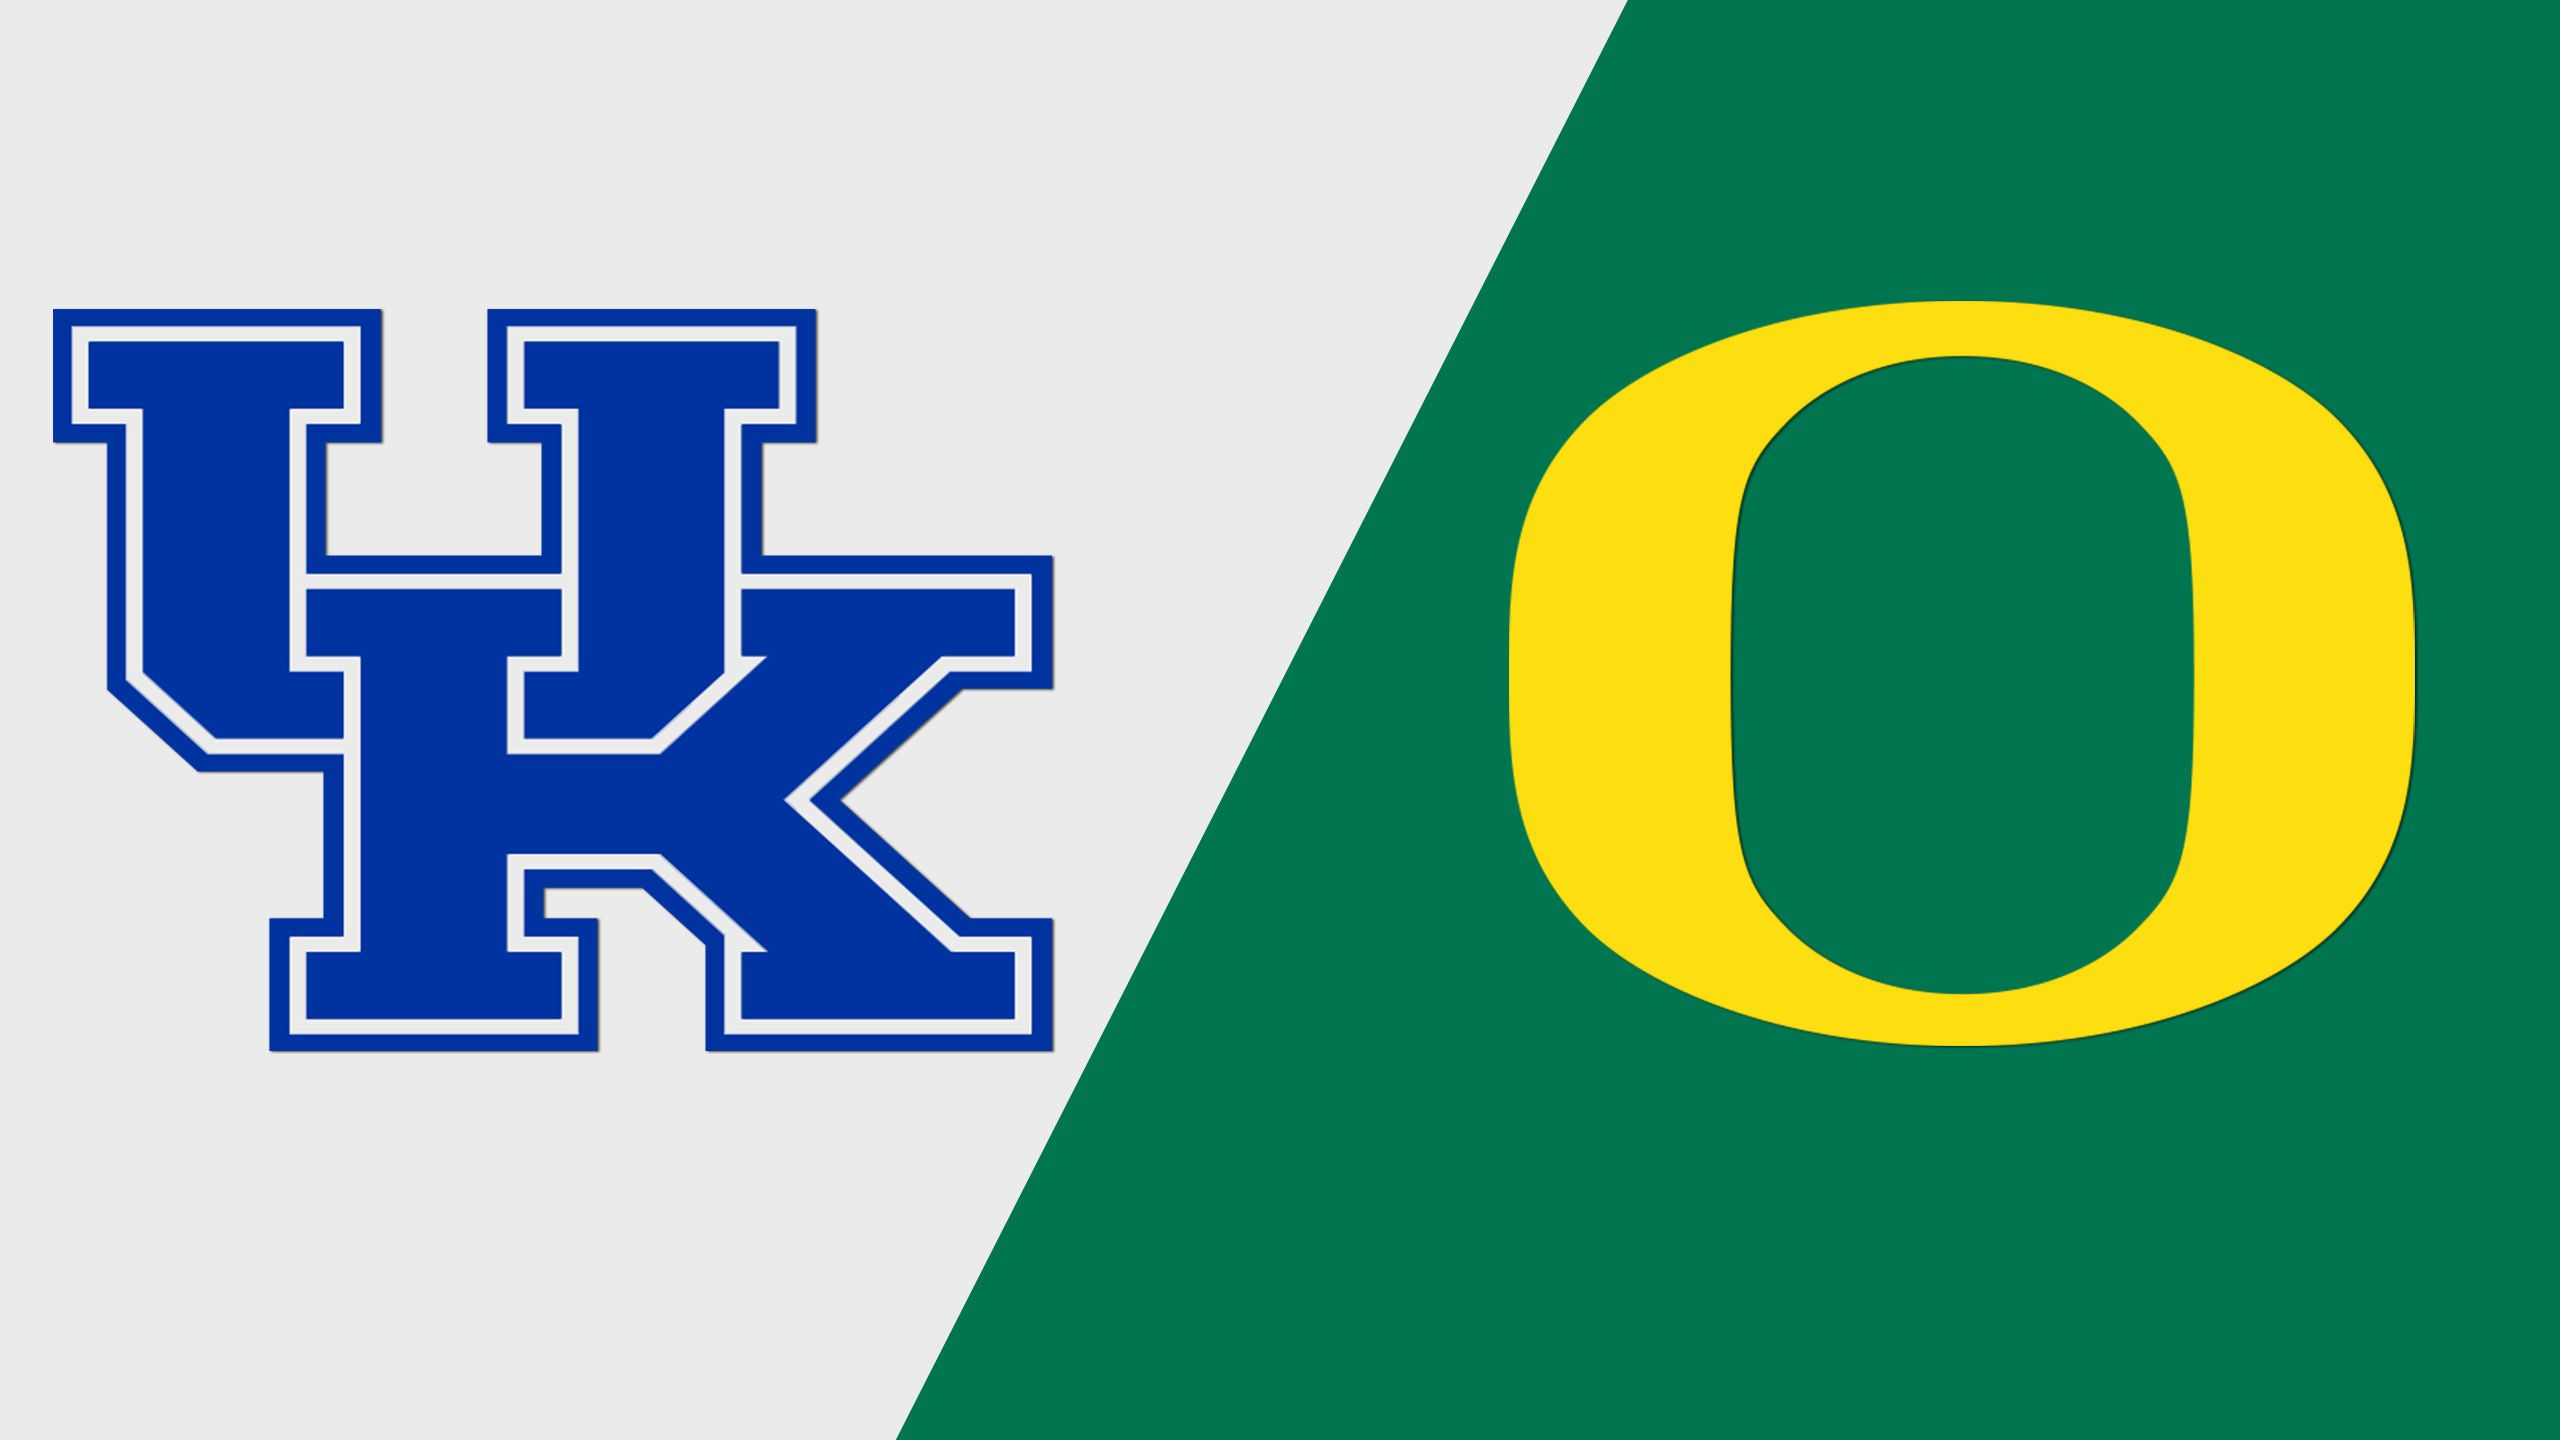 #16 Kentucky vs. #1 Oregon (Site 3 / Game 1) (NCAA Softball Championship)